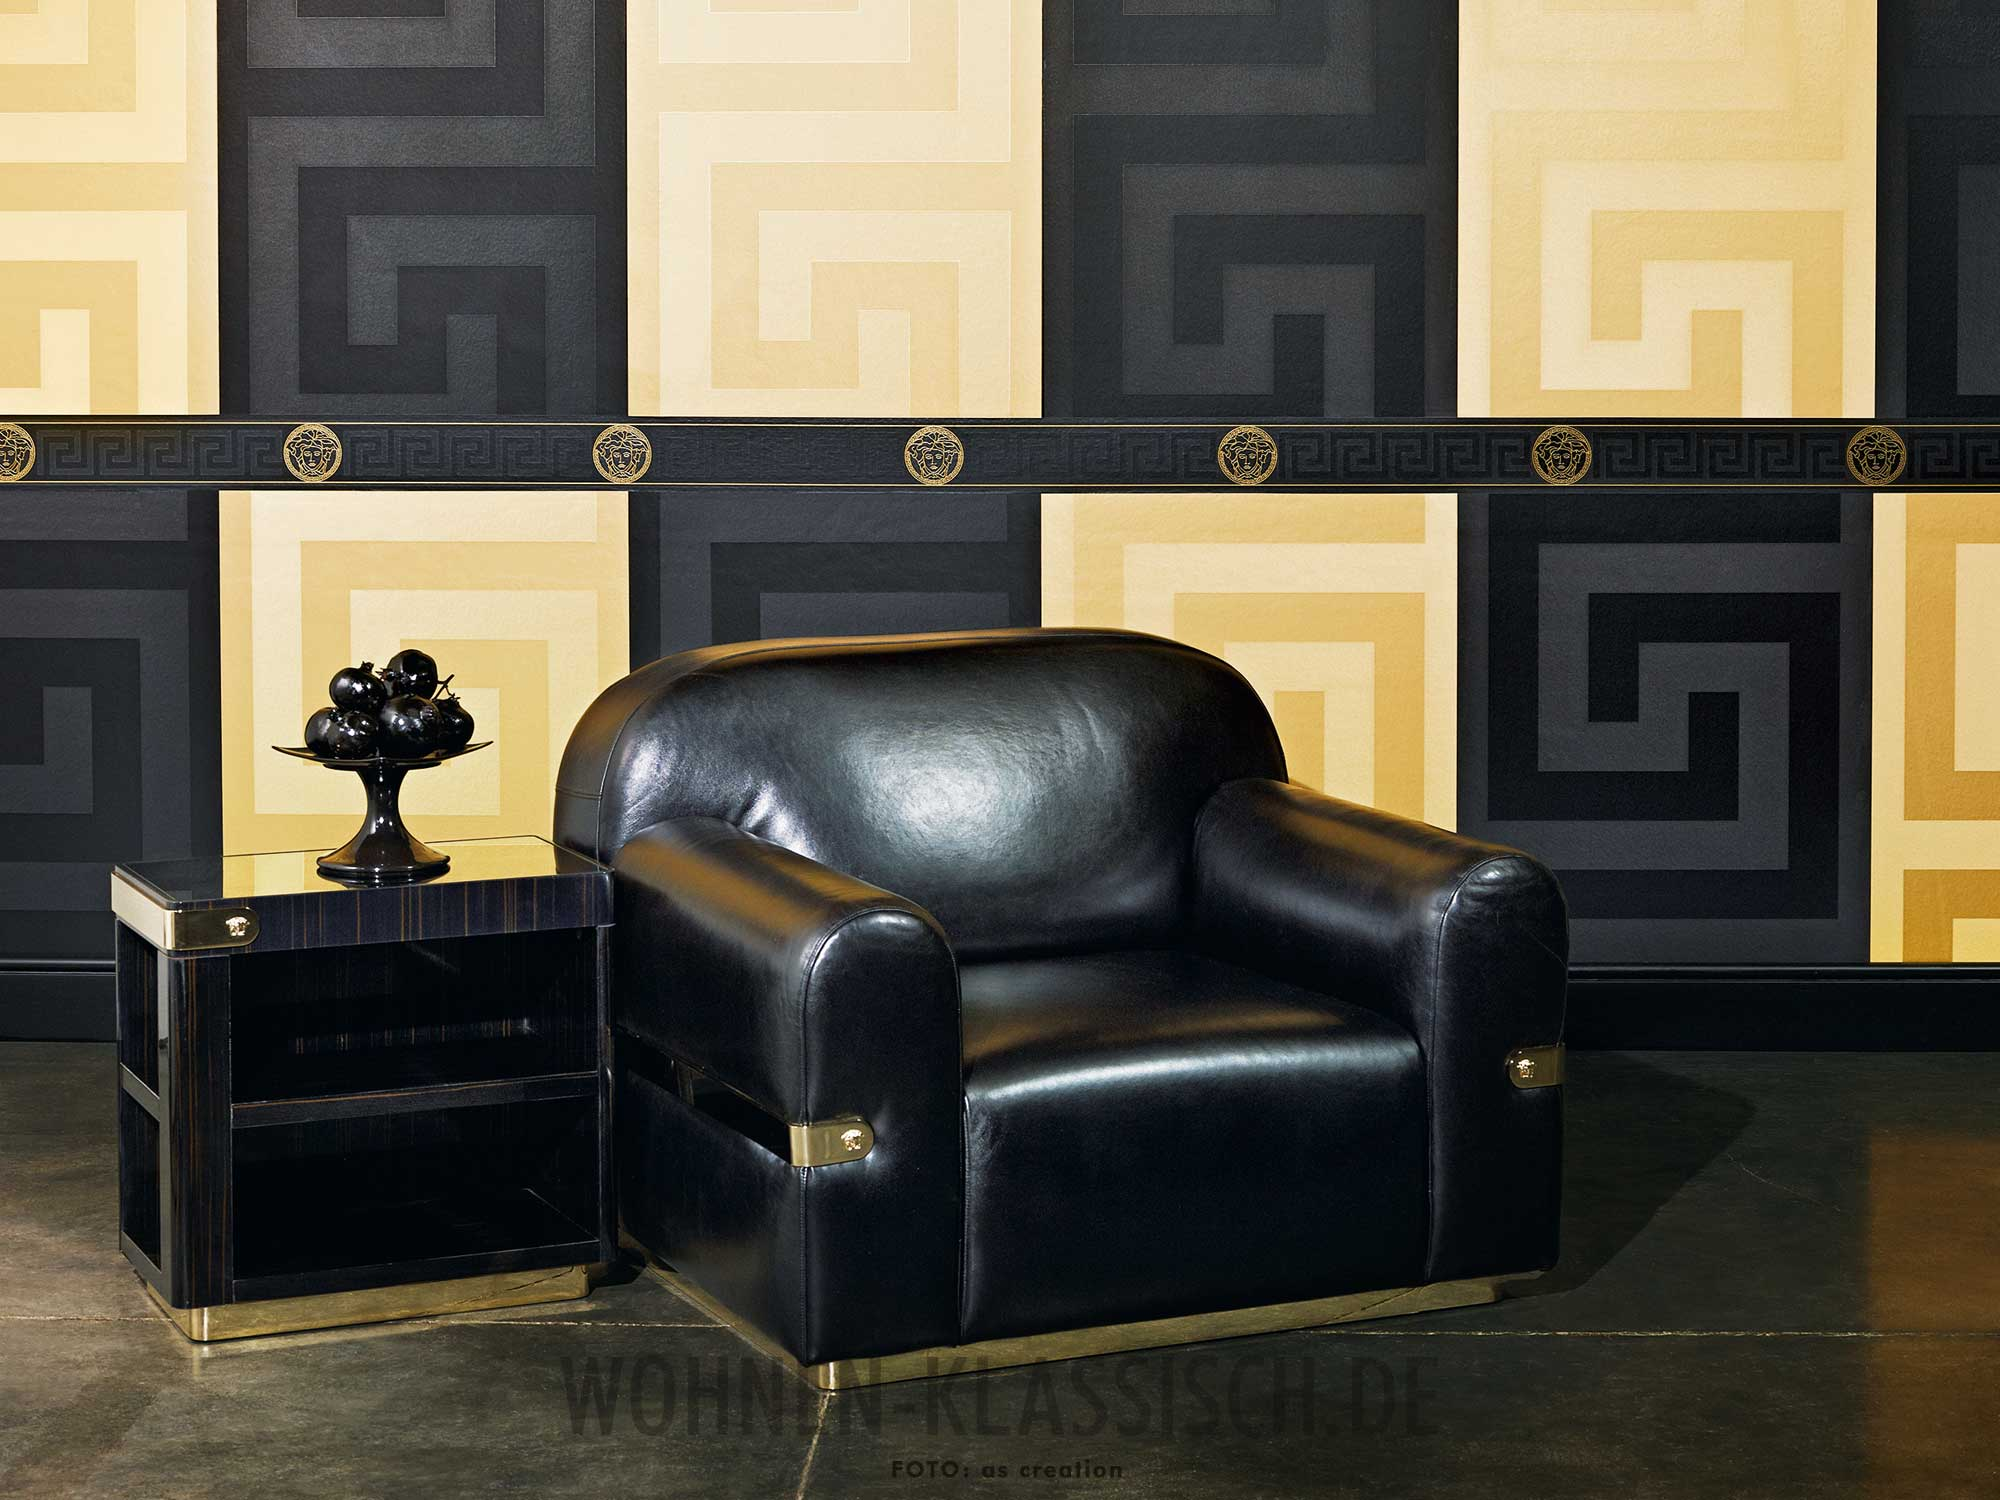 am laufenden m anderband klassisch wohnen. Black Bedroom Furniture Sets. Home Design Ideas